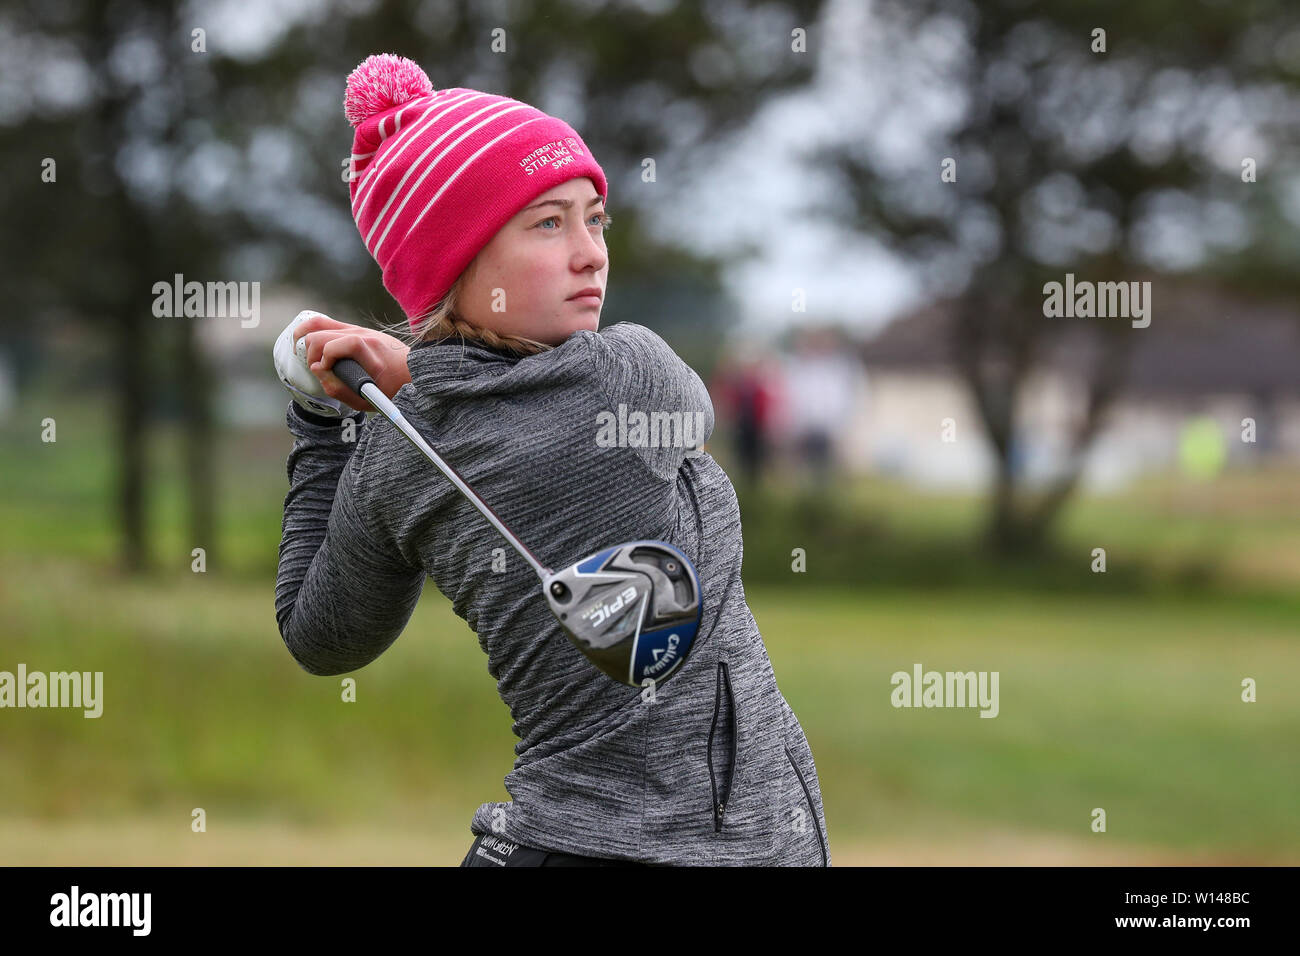 Troon, Scotland, UK. 30th June 2019. On the final day of the Competition the remaining 8 golfers, playing matchplay golf competed over Barassie Links Golf course, Troon in blustery wind and squally rain conditions to try and win the Championship Cup and the Clark Rosebowl. Image of JENNIFER RANKINE representing Haggs Castle GC teeing off at the 15th Credit: Findlay/Alamy Live News - Stock Image